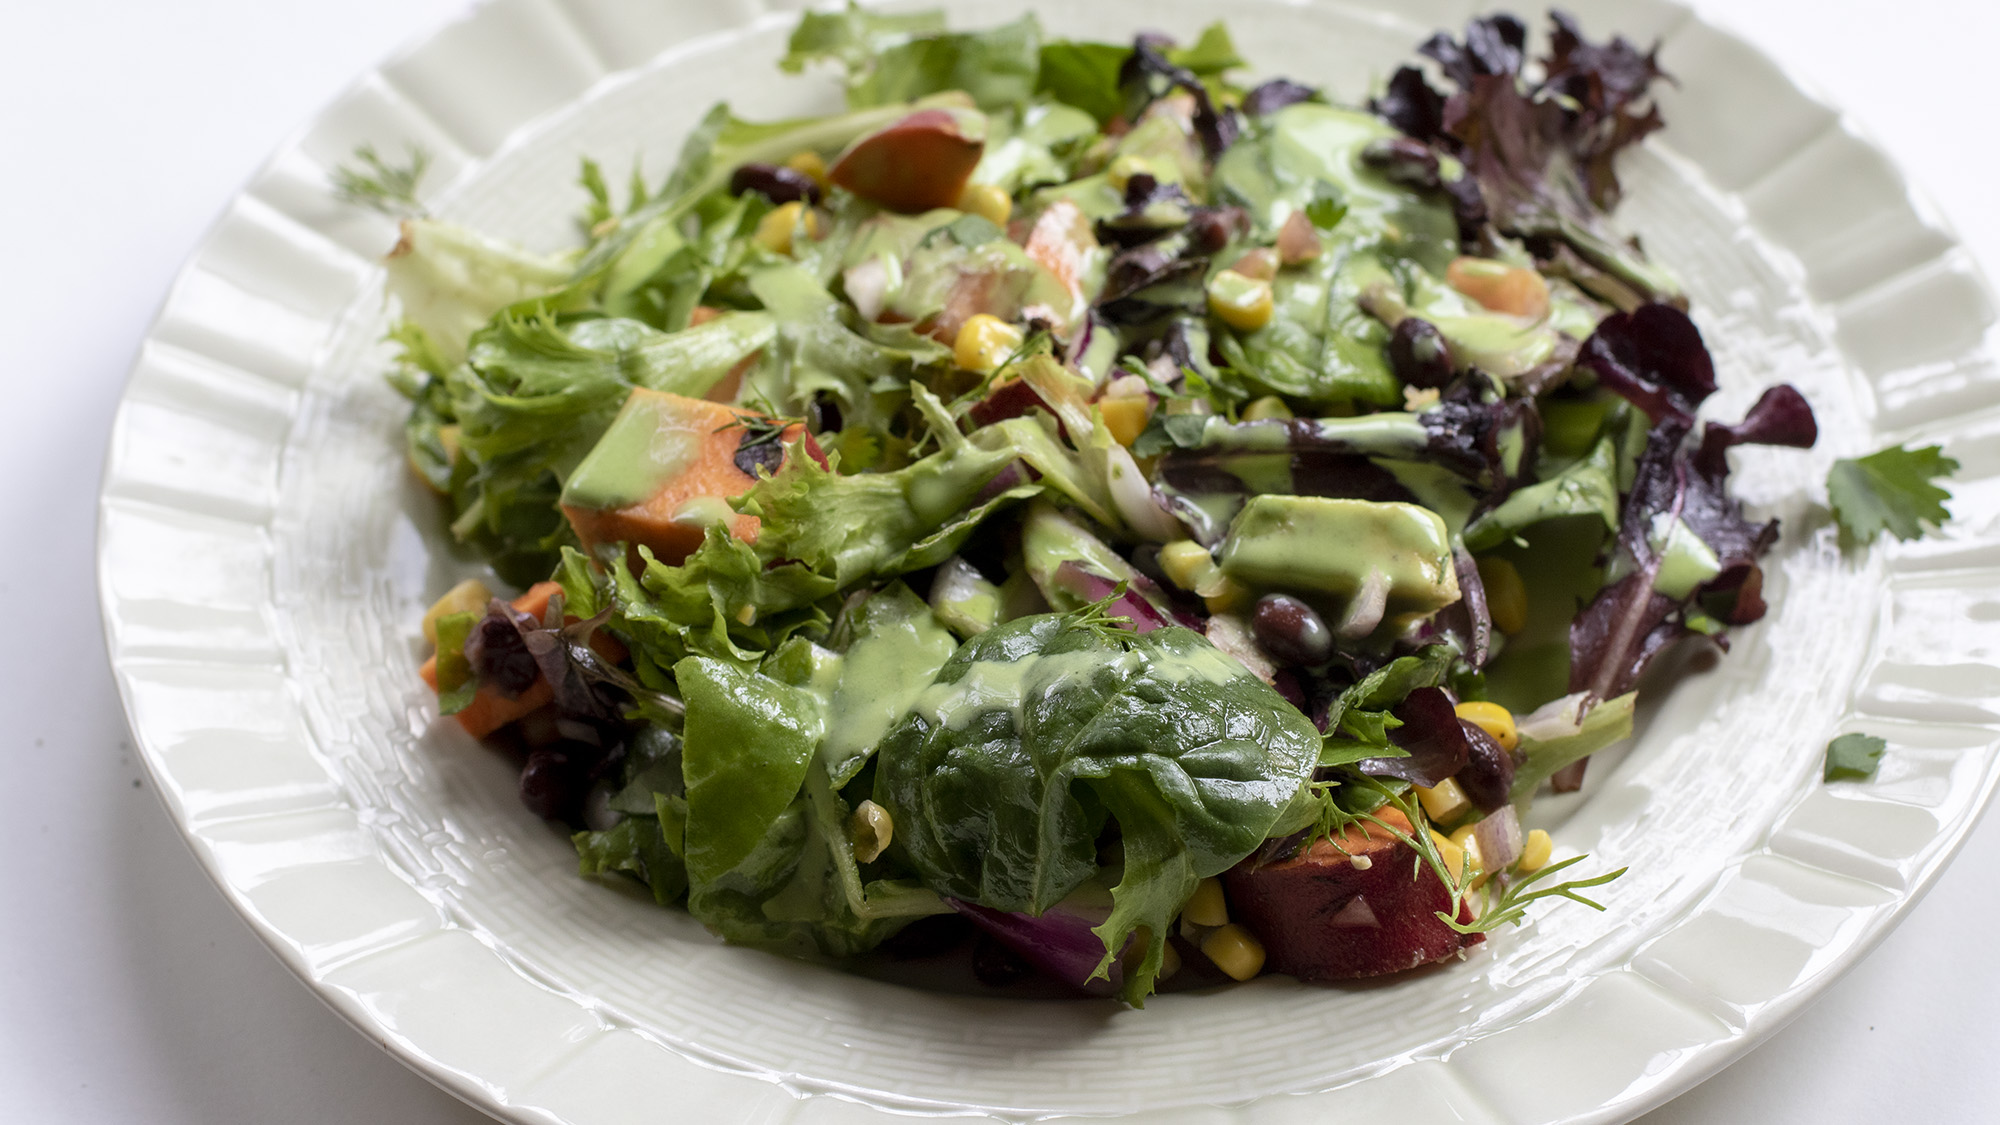 Southwestern salad with dressing on a green plate on a white background.